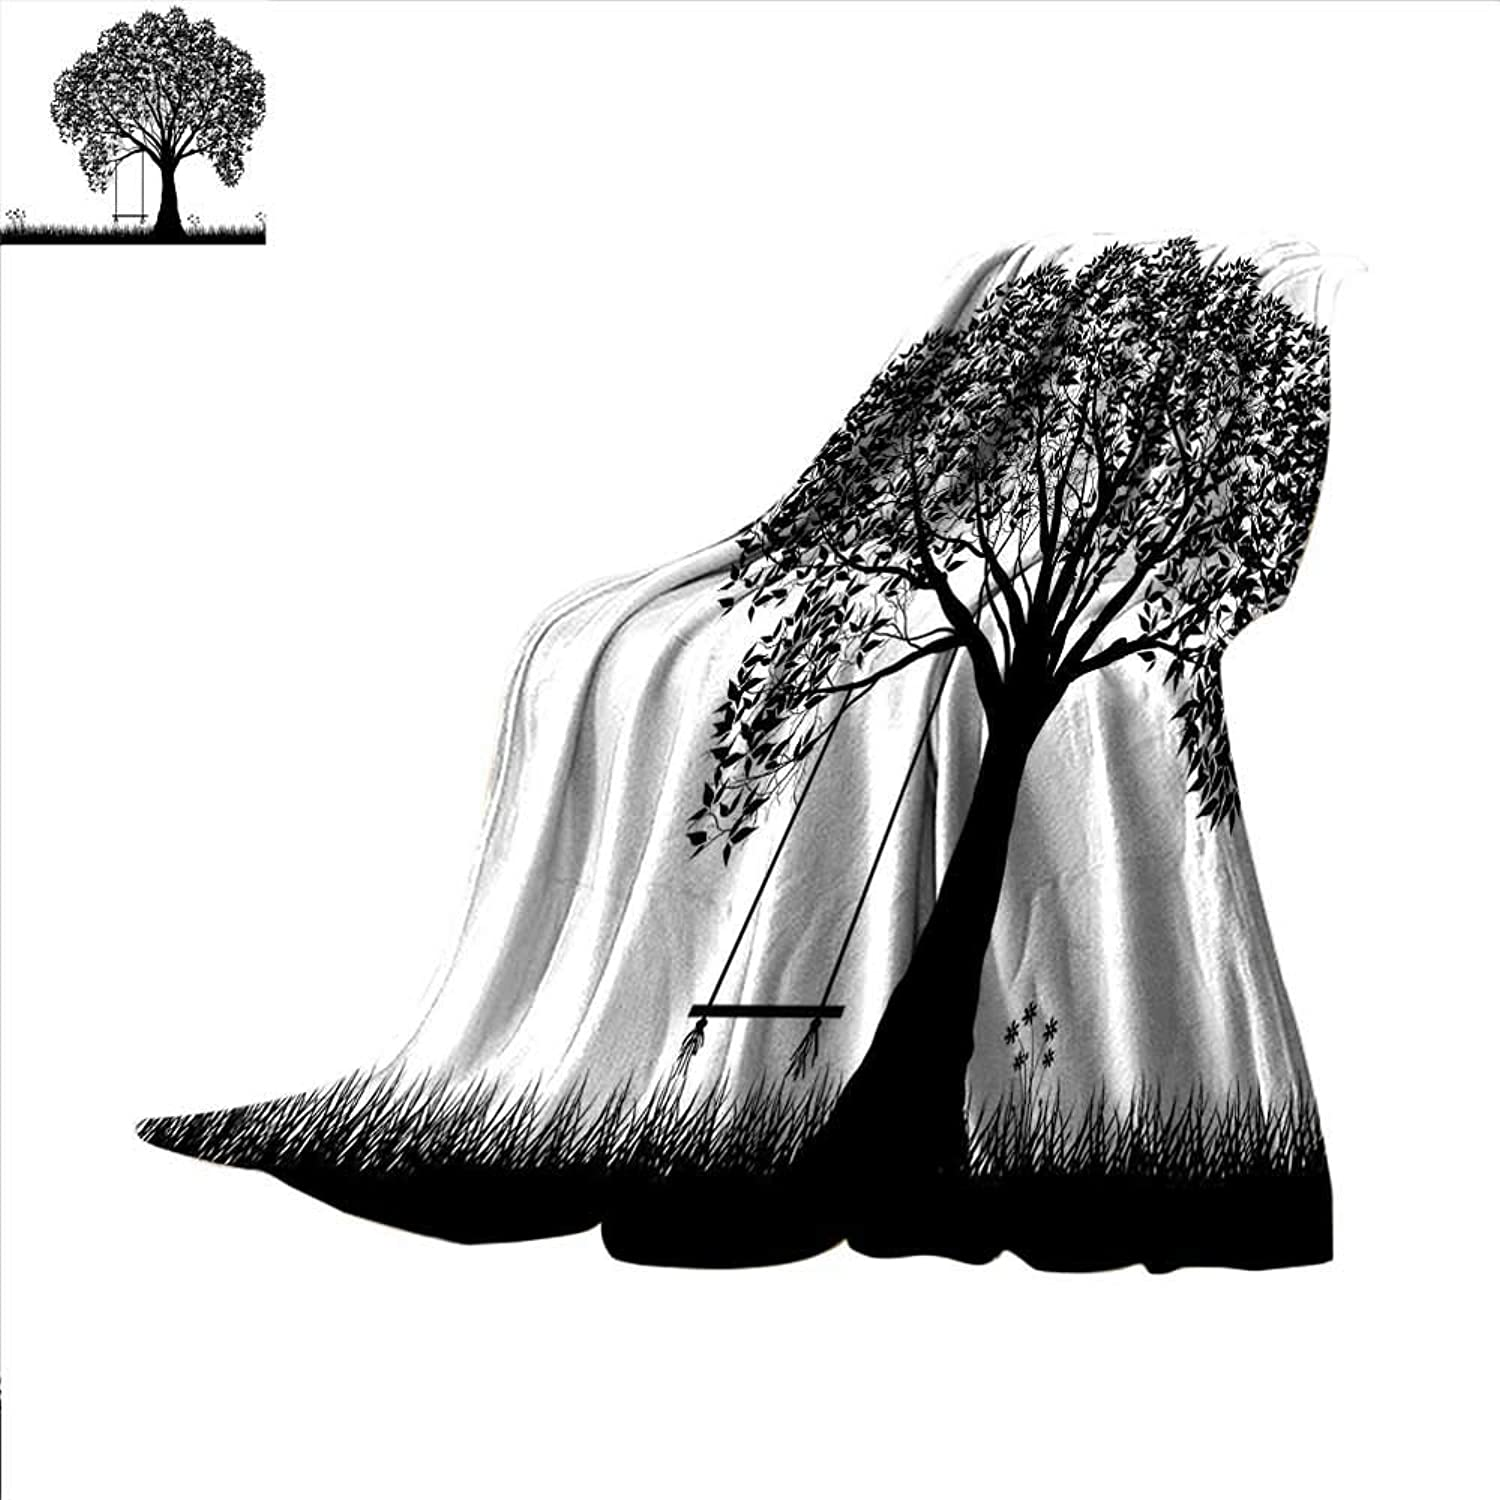 Tree Digital Printing Blanket A Tree Silhouette with a Swing Illustration Flowers and Grass Monochrome Pattern Summer Quilt Comforter 60 x50  Black and White